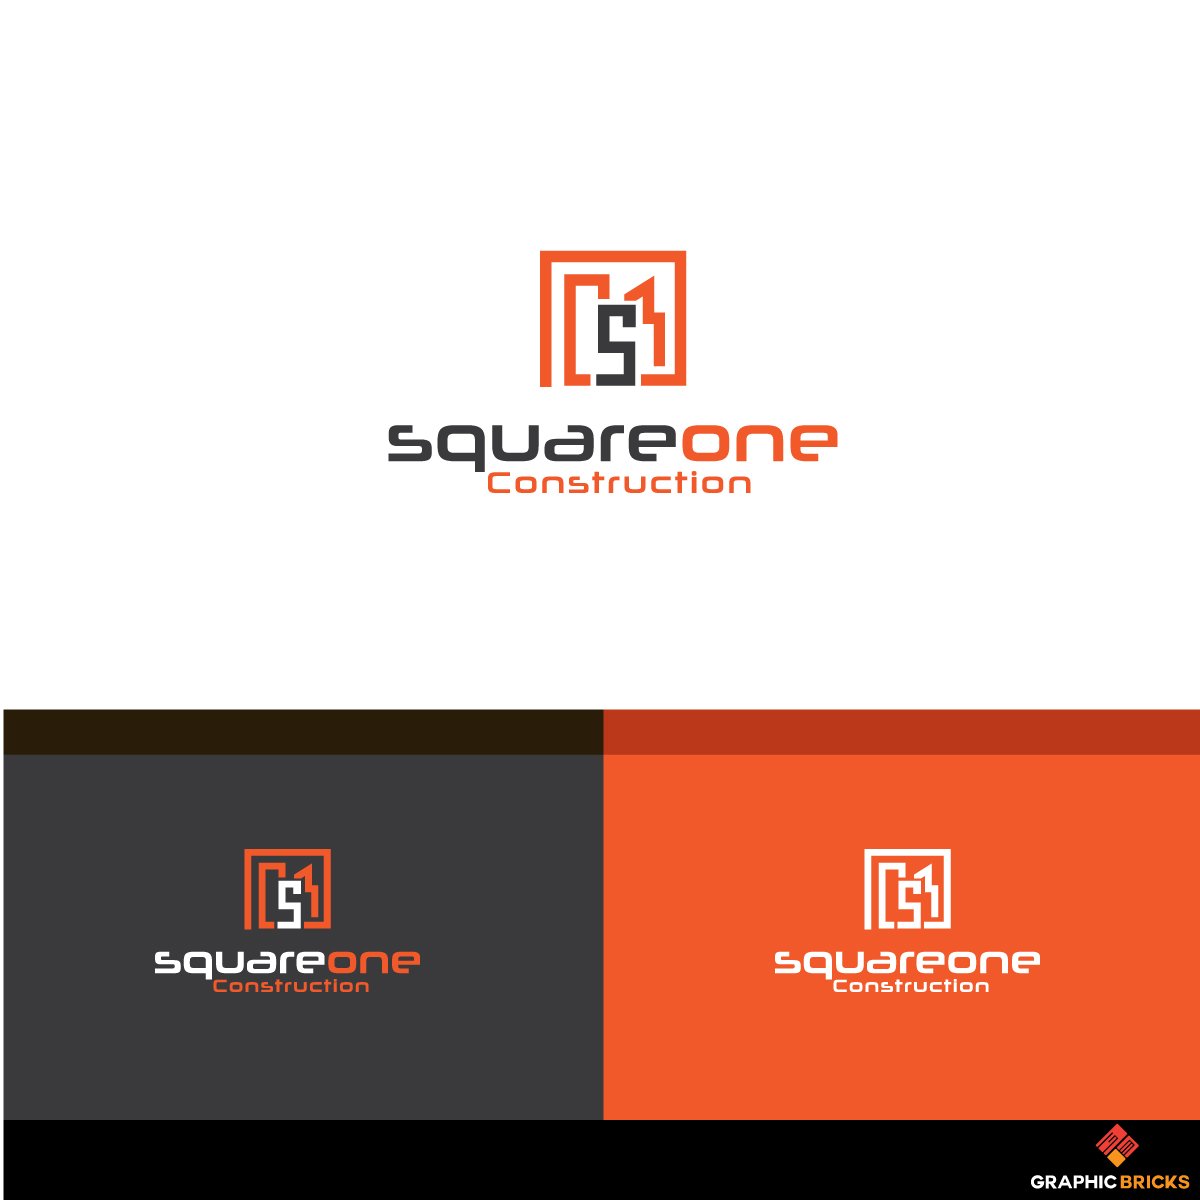 Modern, Upmarket, Architecture Logo Design for Square One